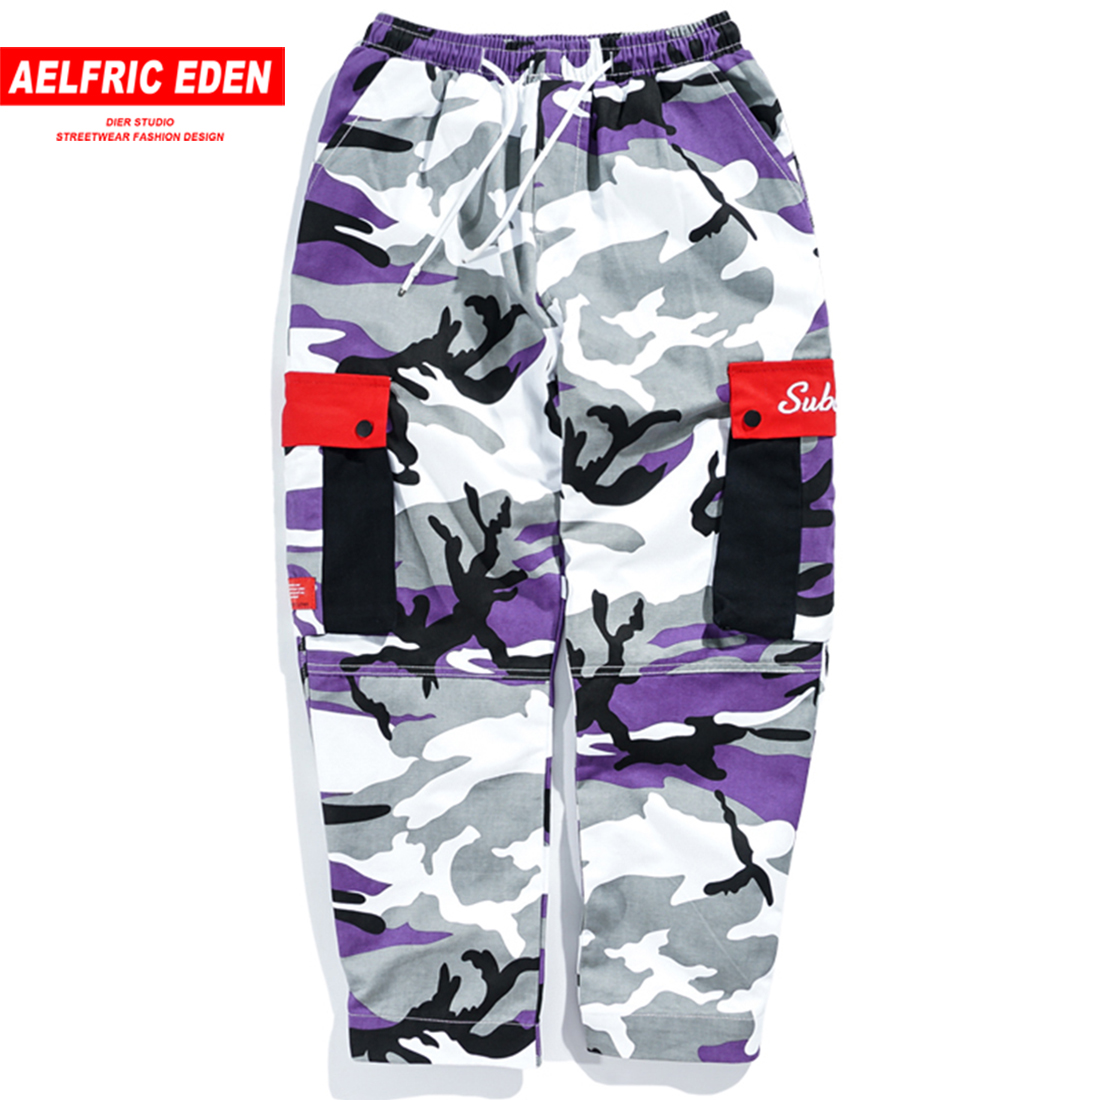 Aelfric Eden Camo Mens Cargo Pants 2018 Color Block Pockets Hip Hop Casual Camouflage Trousers Fashion Joggers Streetwear B065